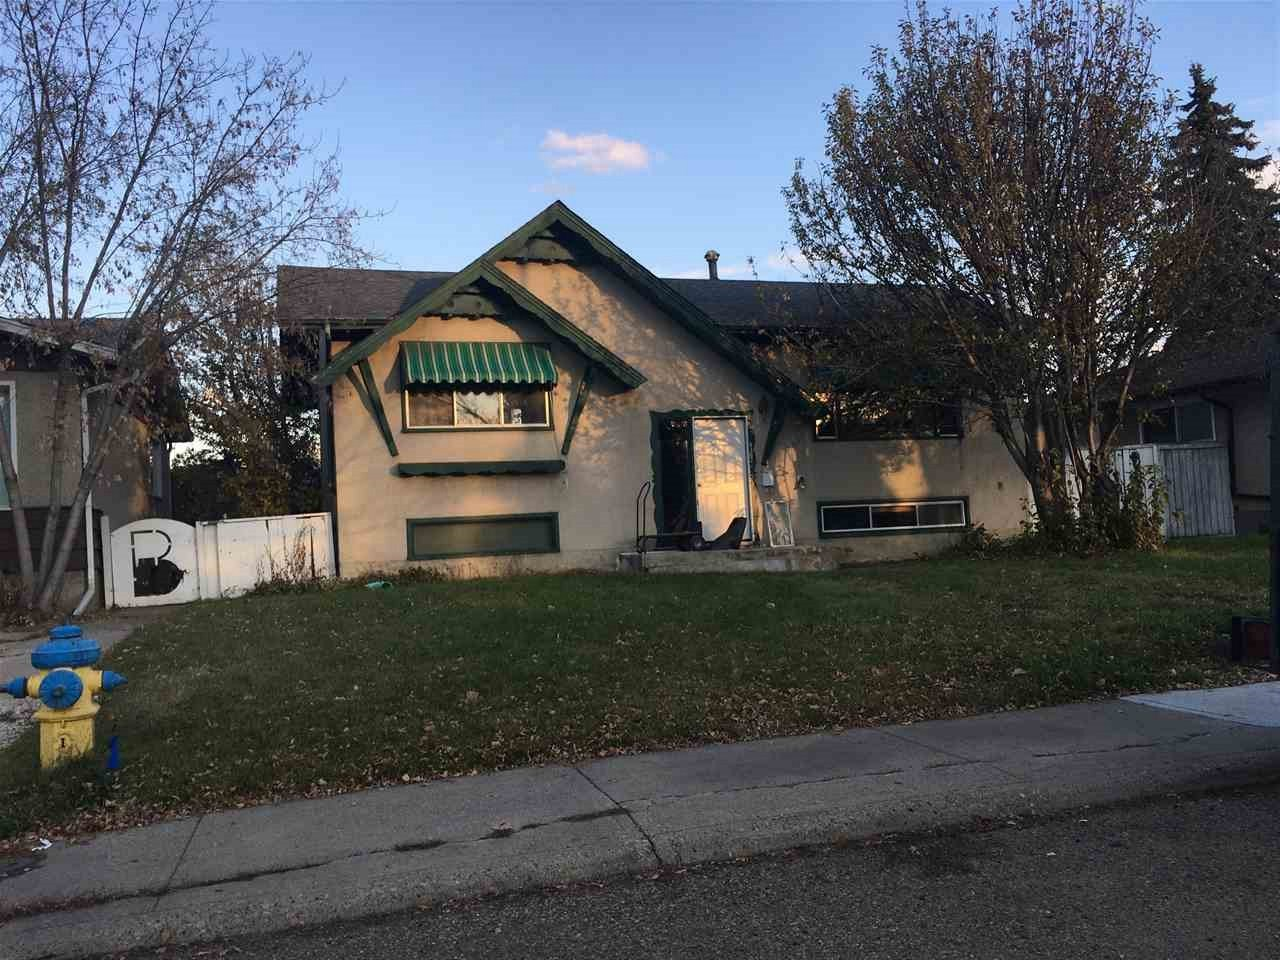 Great opportunity to build equity and develop a legal basement suite! Large double garage close to all levels of schools, shopping and public transportation. Minutes to downtown, Bonniedoon Mall & LRT.